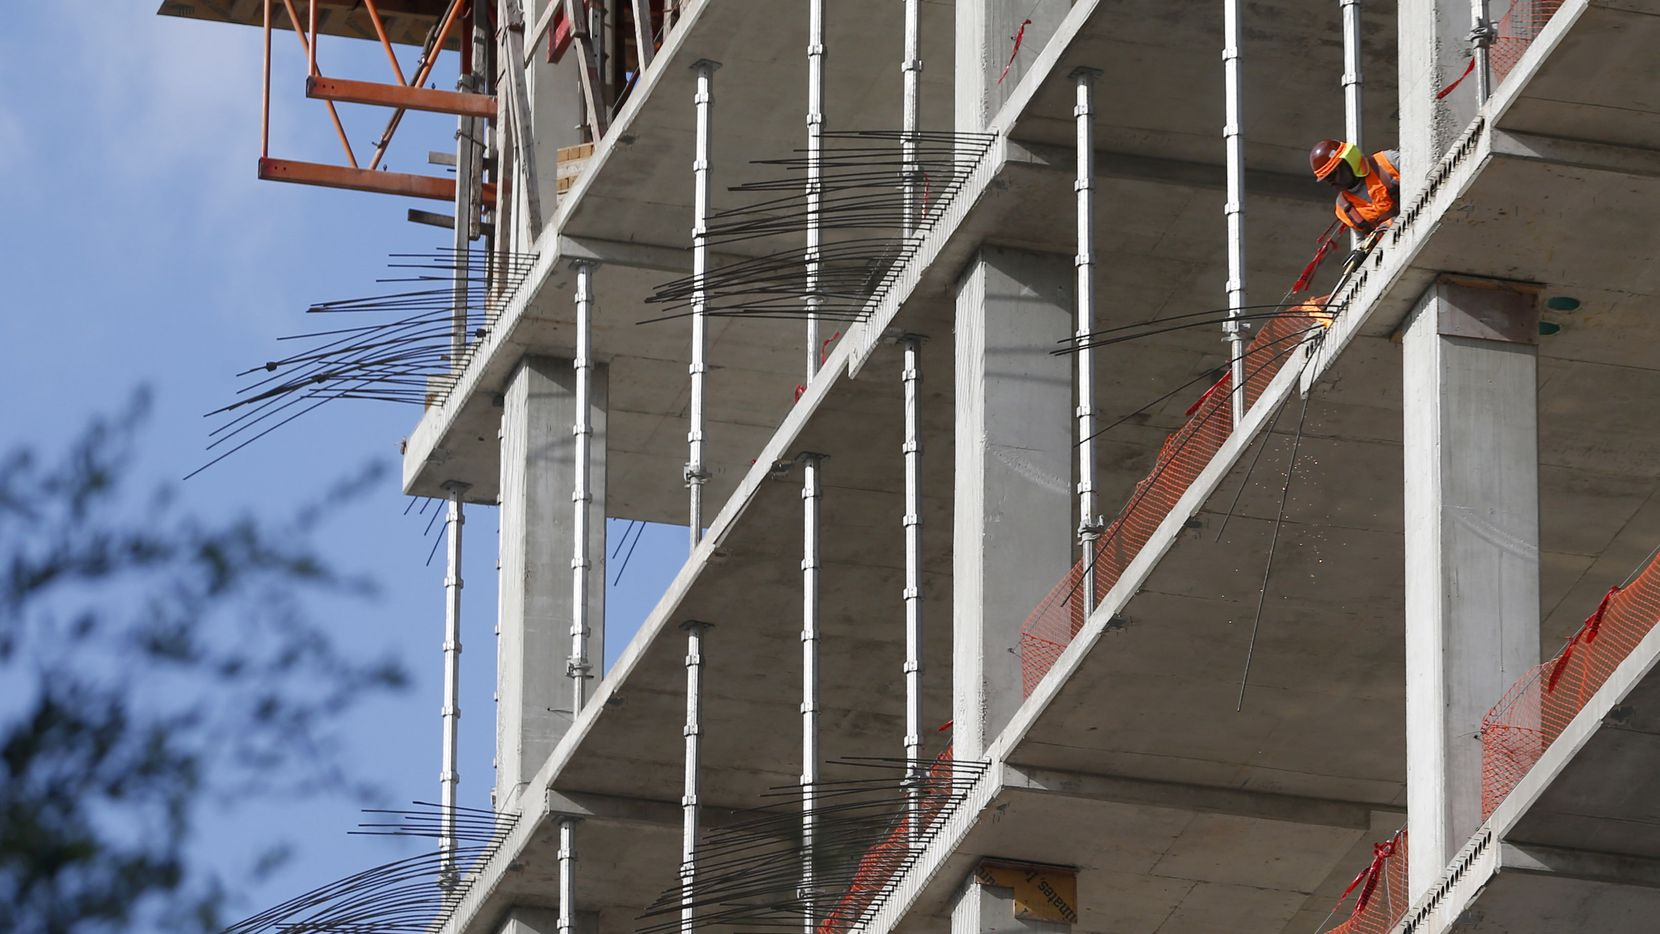 More than 5 million square feet of office space is being built in the Dallas area.